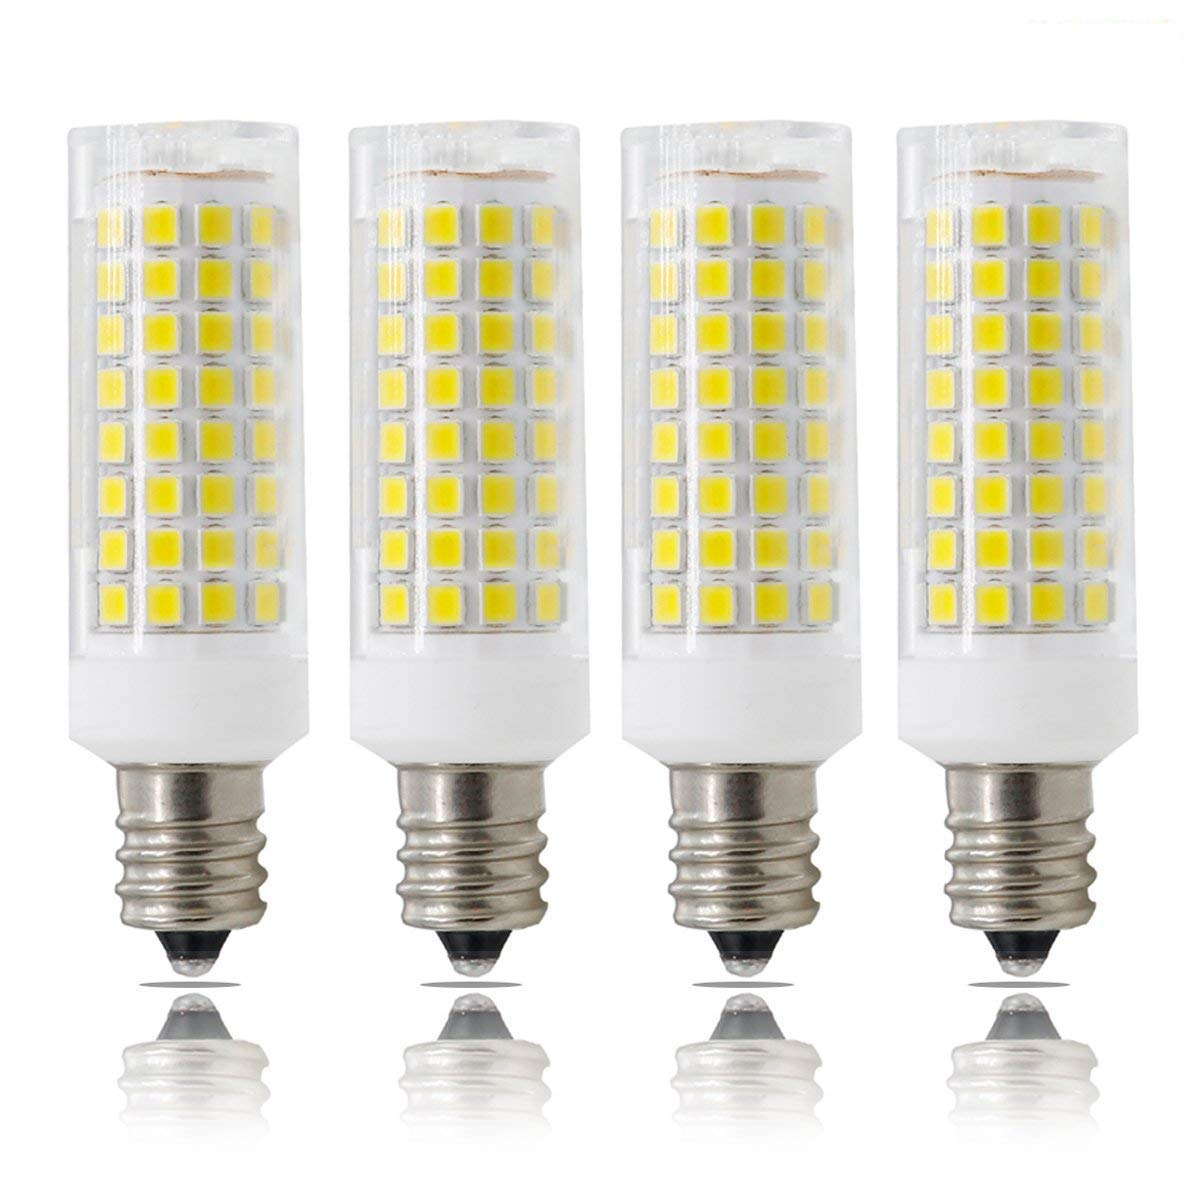 E12 LED, Dimmable Candelabra Base E12 Bulbs, ALL-NEW(102PCS), 7W E12 Led Bulb 75W Equvilent,730LM, 360 Degree Beam Angle T3/T4 Candelabra Base Corn Bulb, AC110-130V, 4-PACK (White)